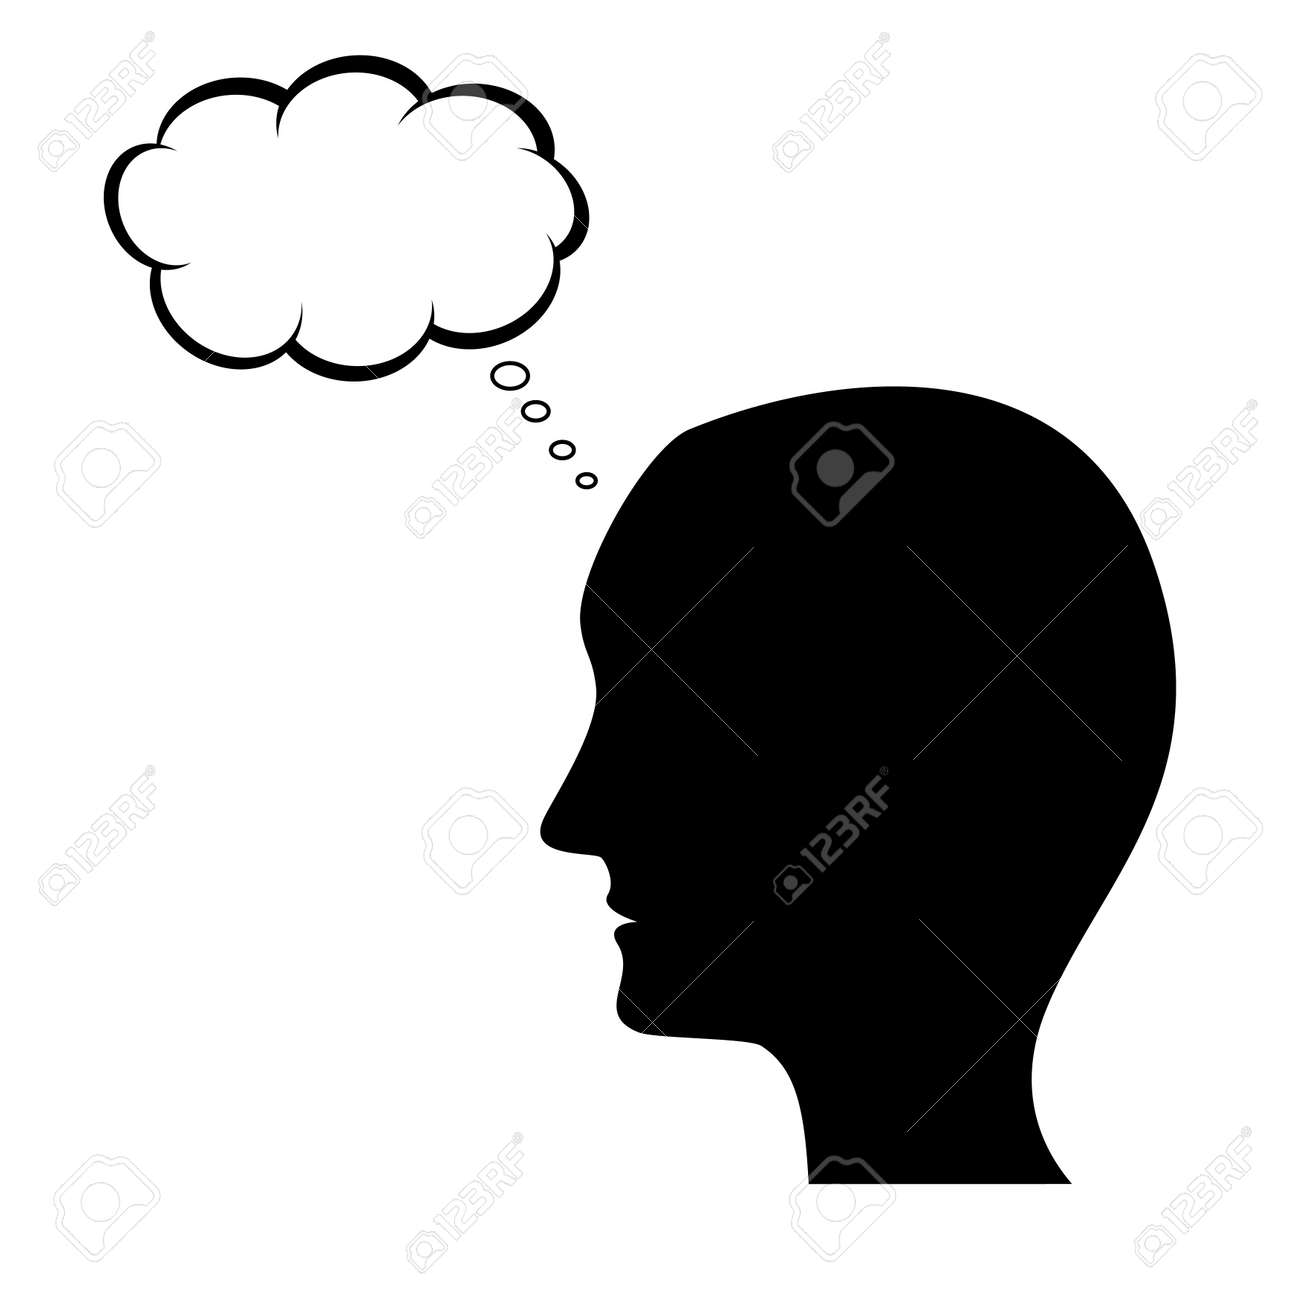 Thinking man silhouette with thought bubble Stock Vector - 8295040